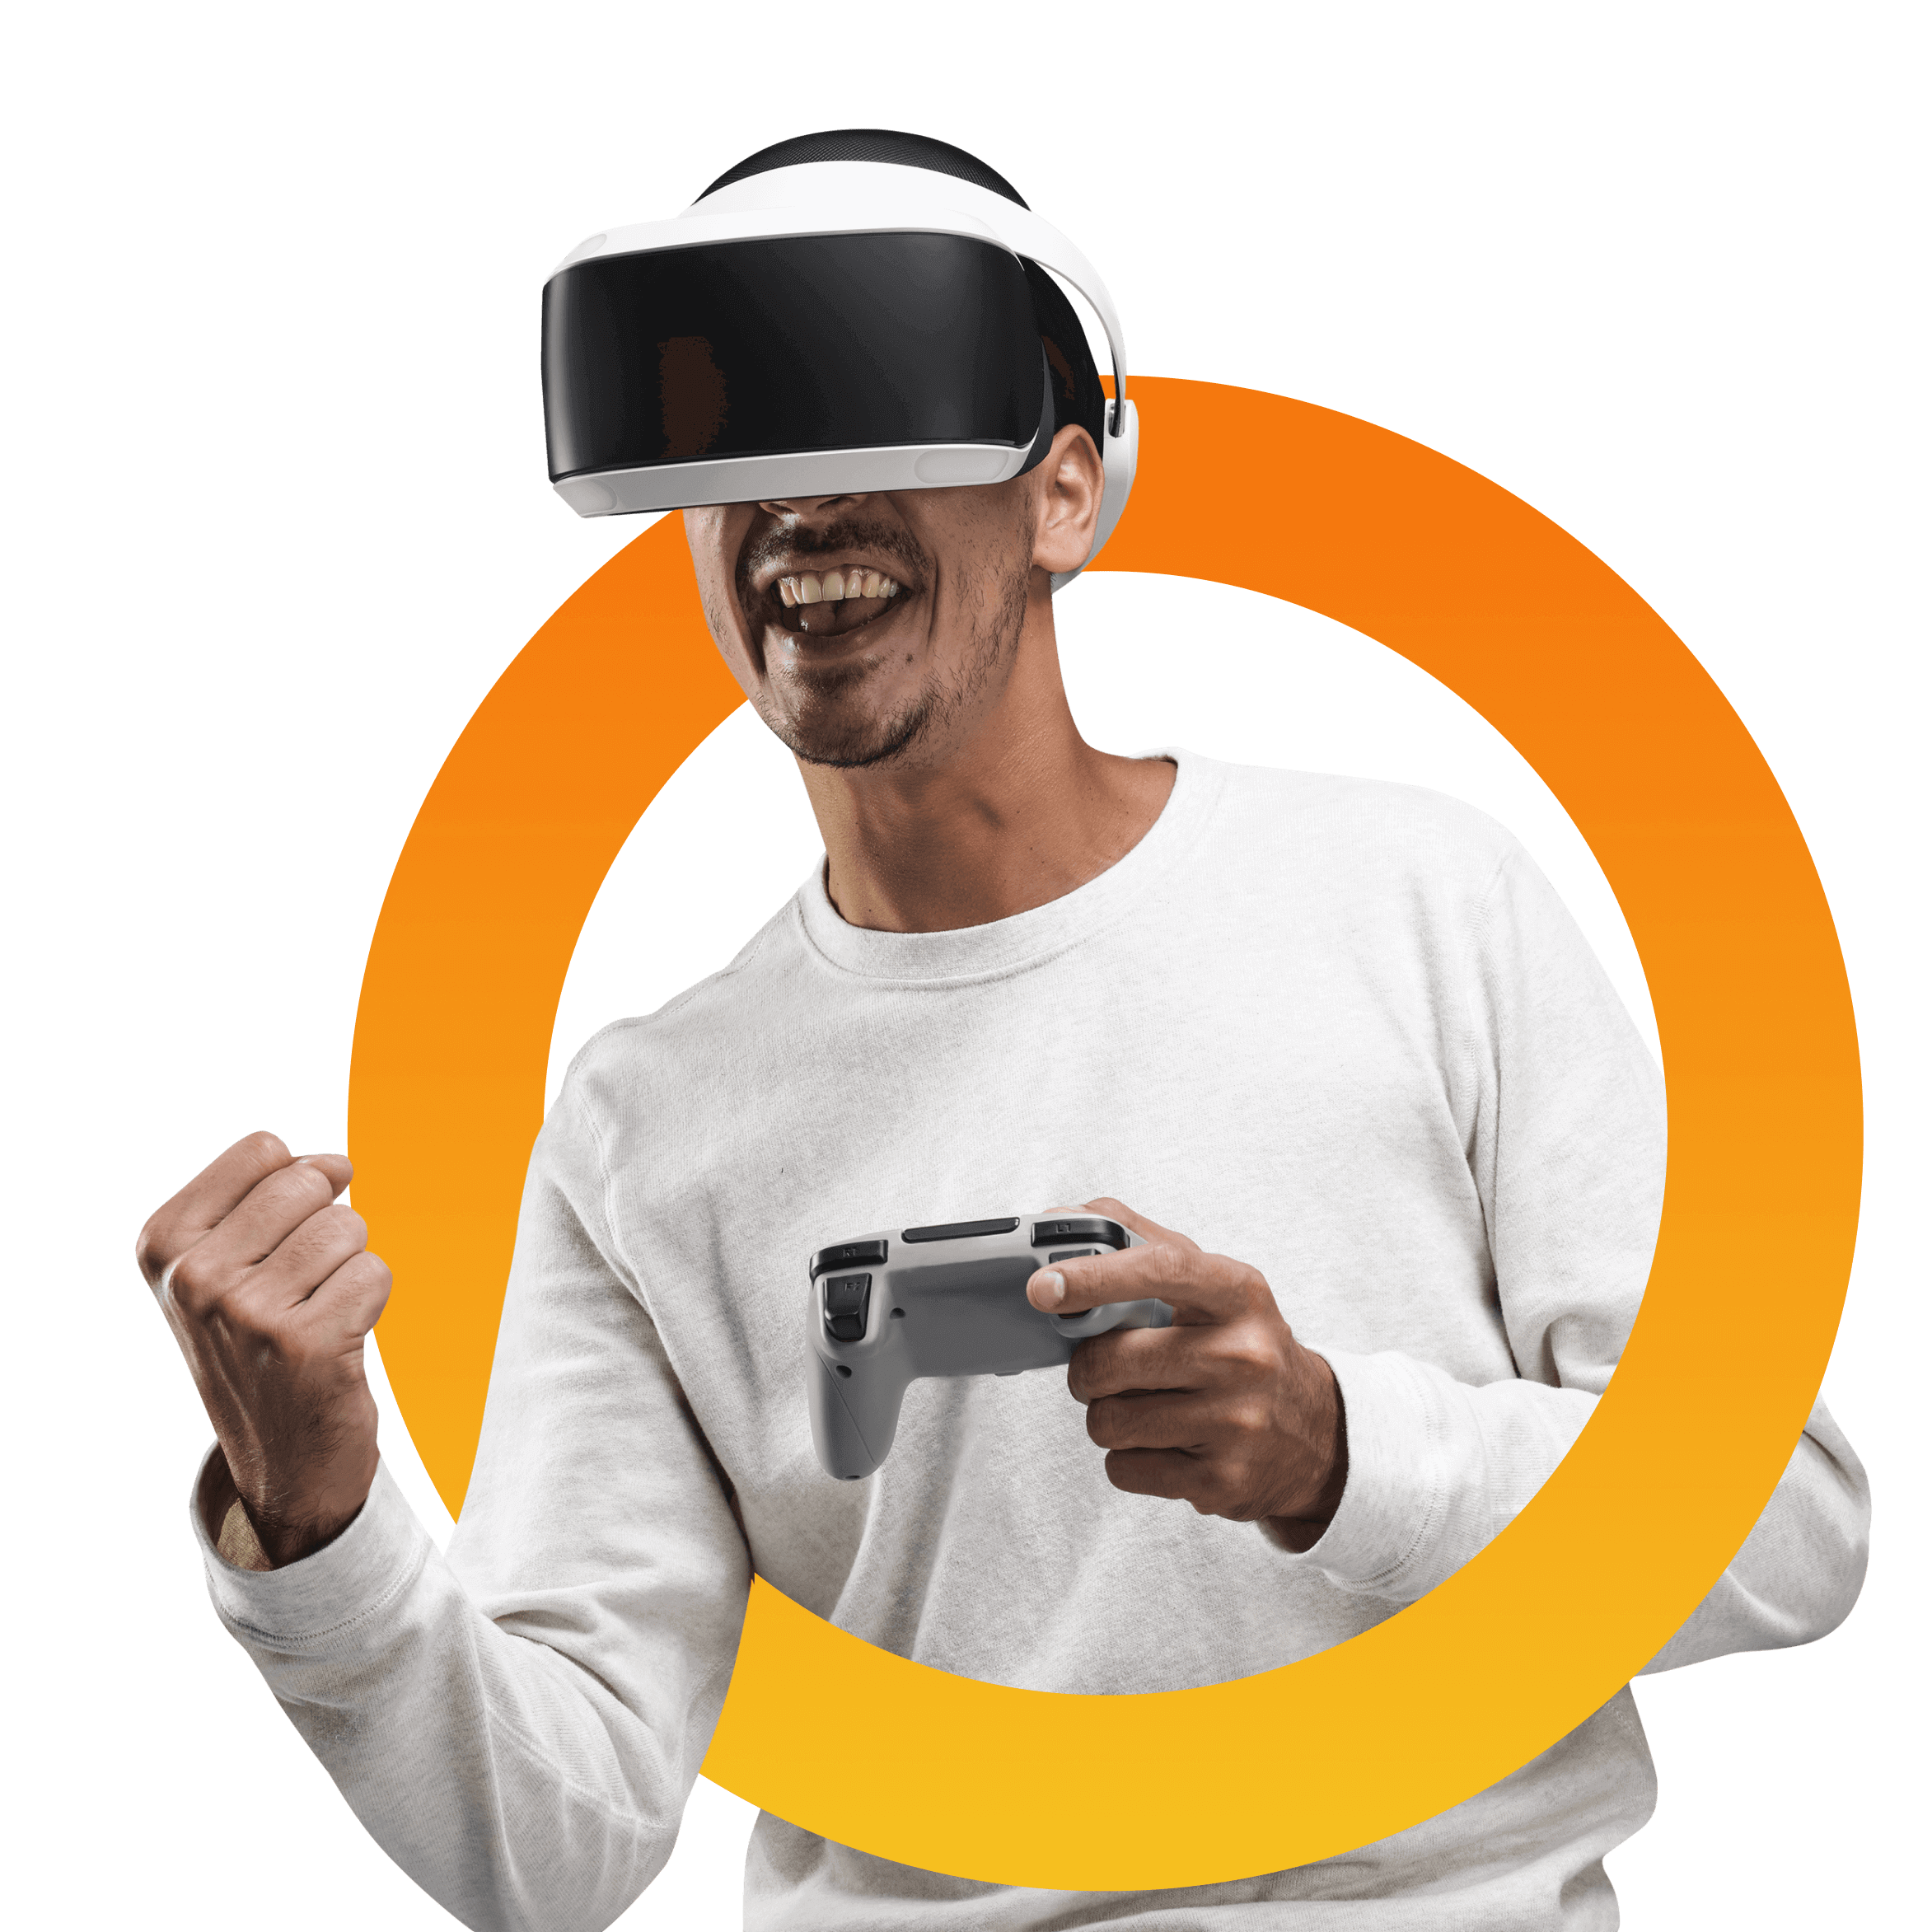 a man playing a virtual relaity game